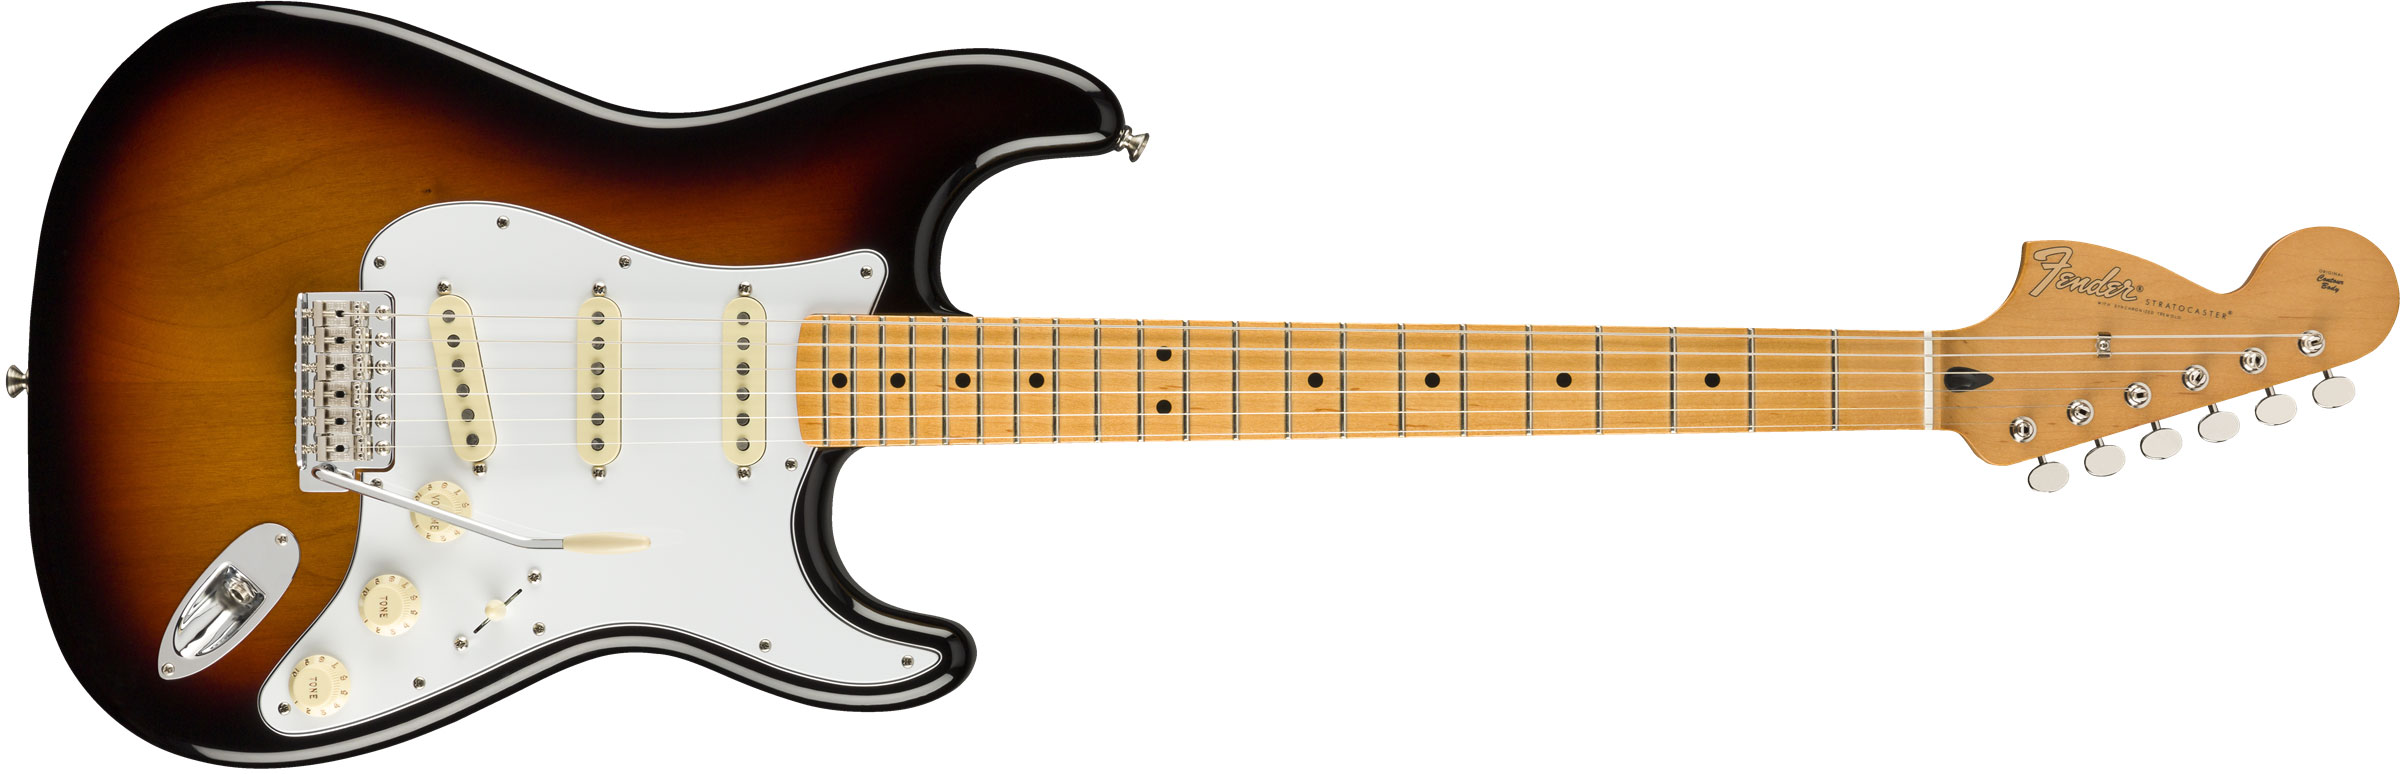 GUITARRA FENDER SIG SERIES JIMI HENDRIX STRATOCASTER 014-5802-300 3-COLOR SUNBURST